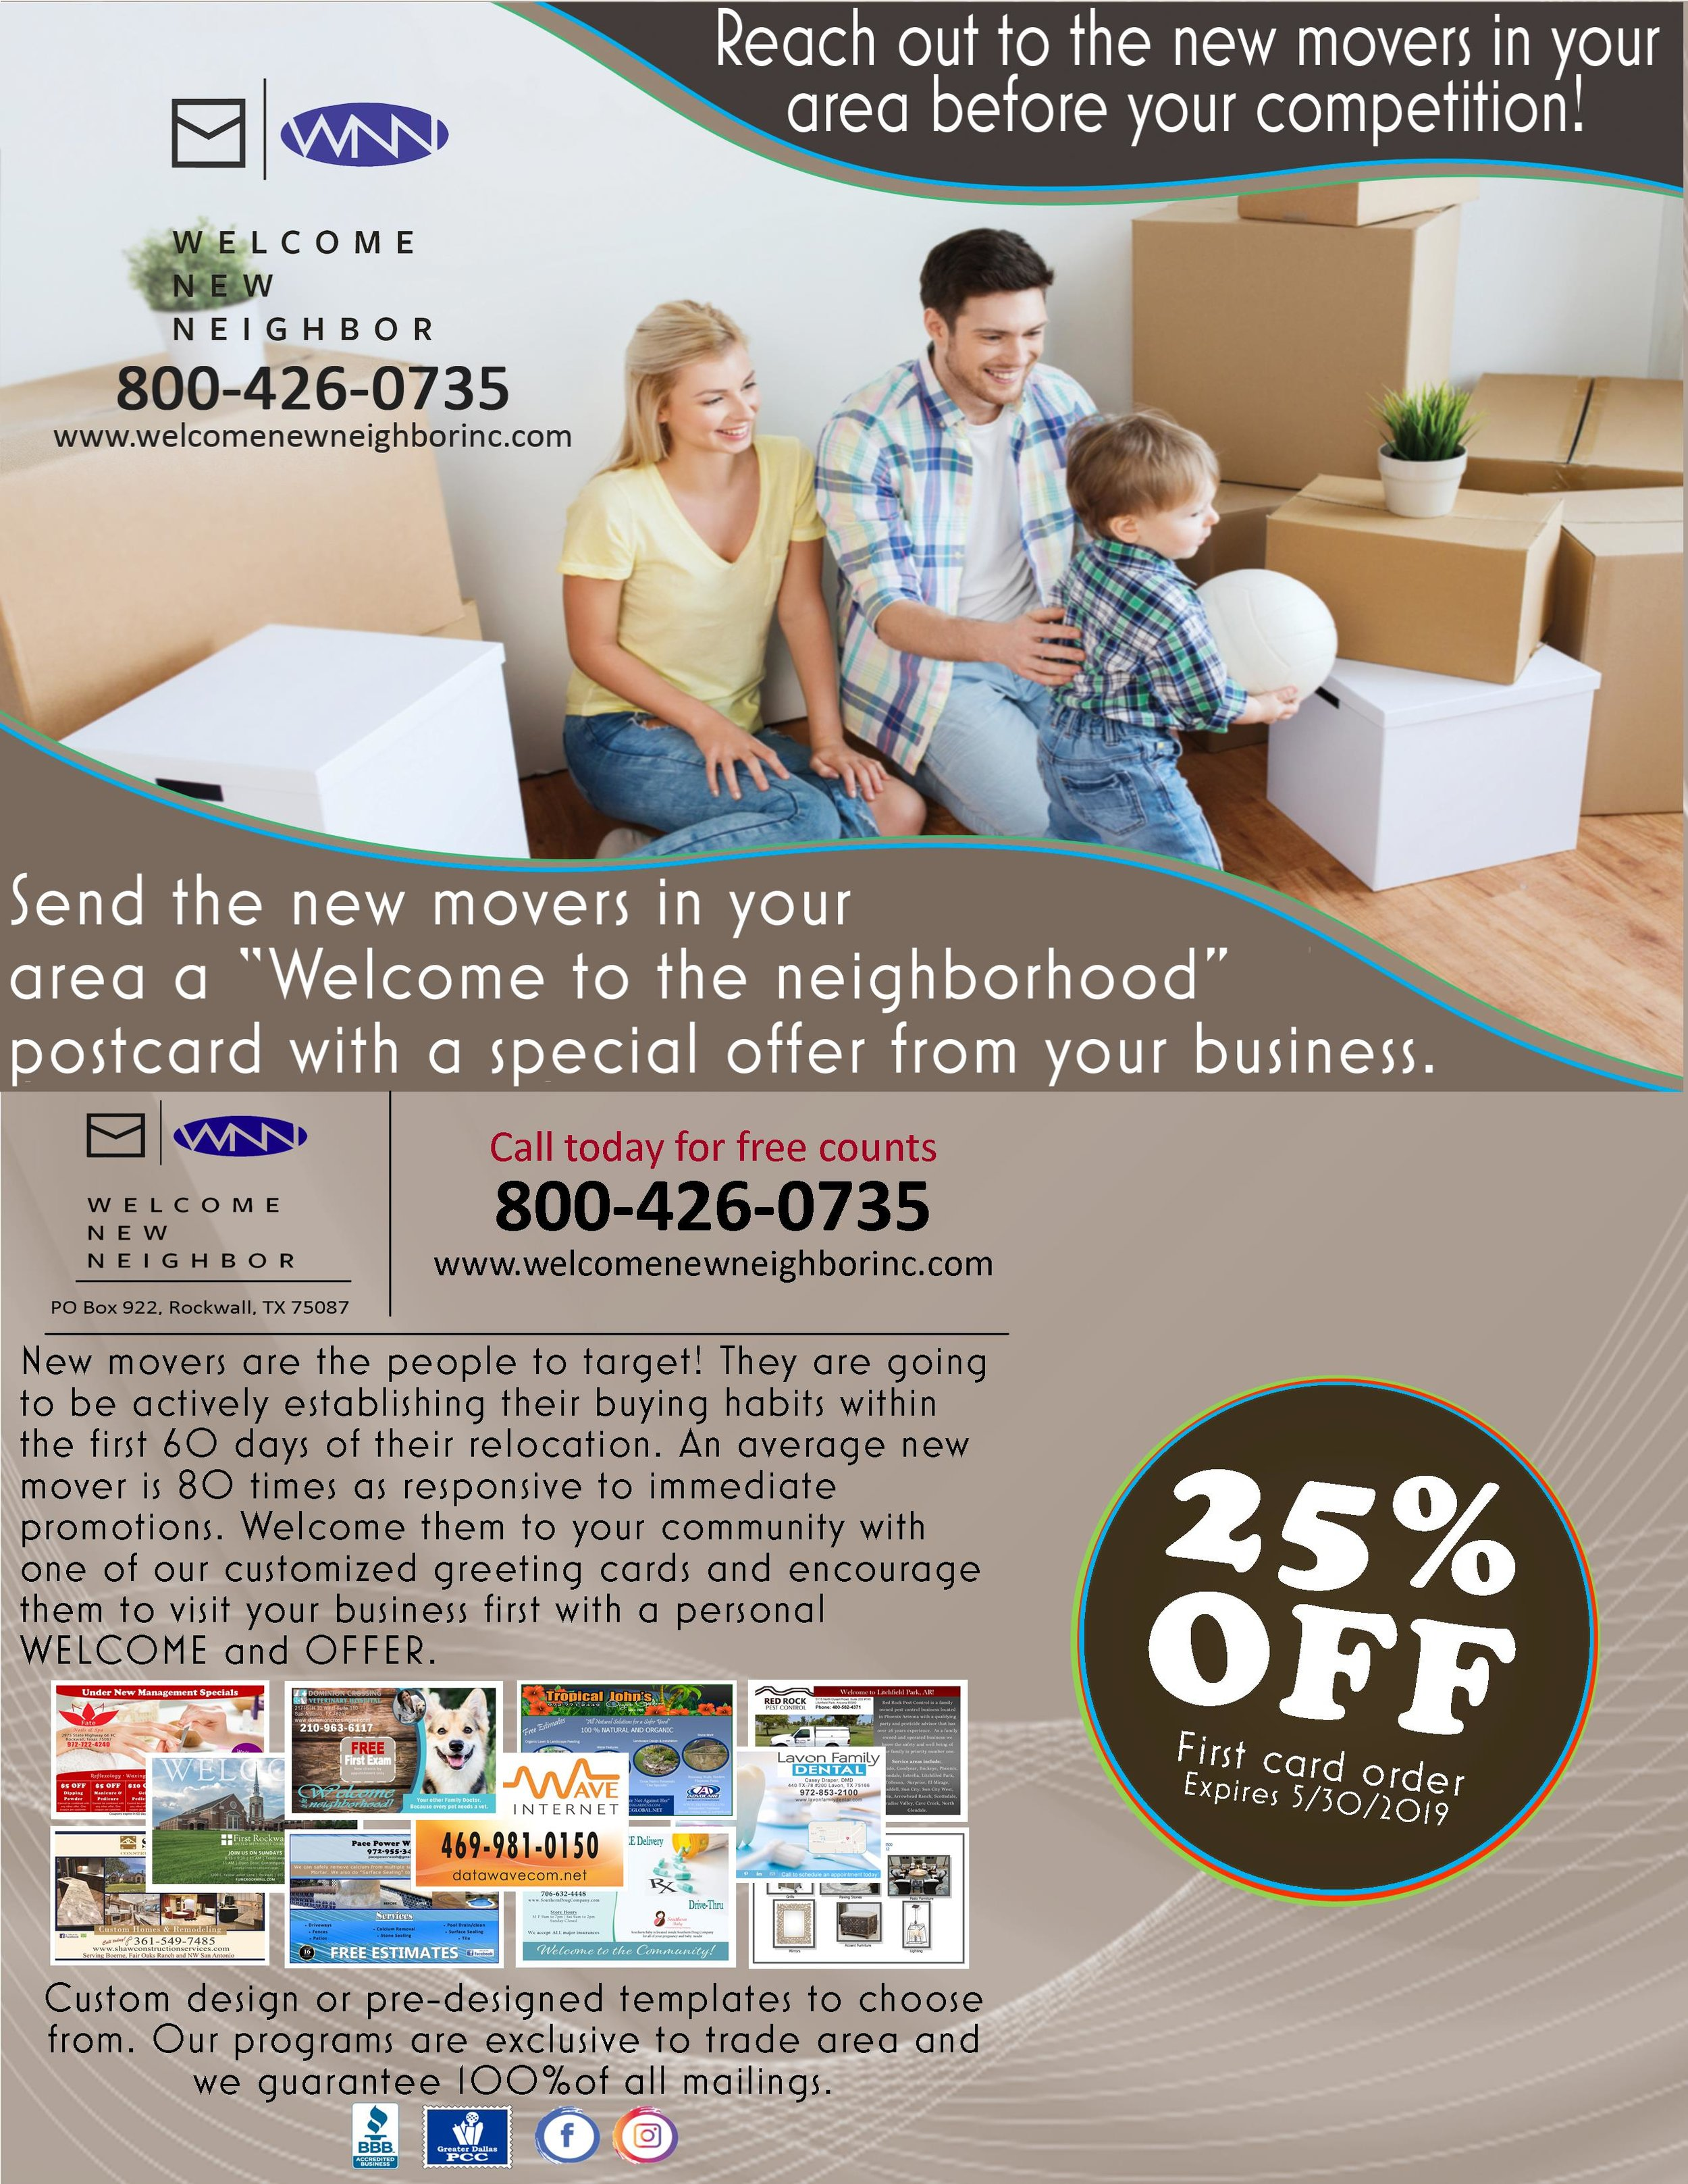 New Mover Business Mailer Sheet.jpg